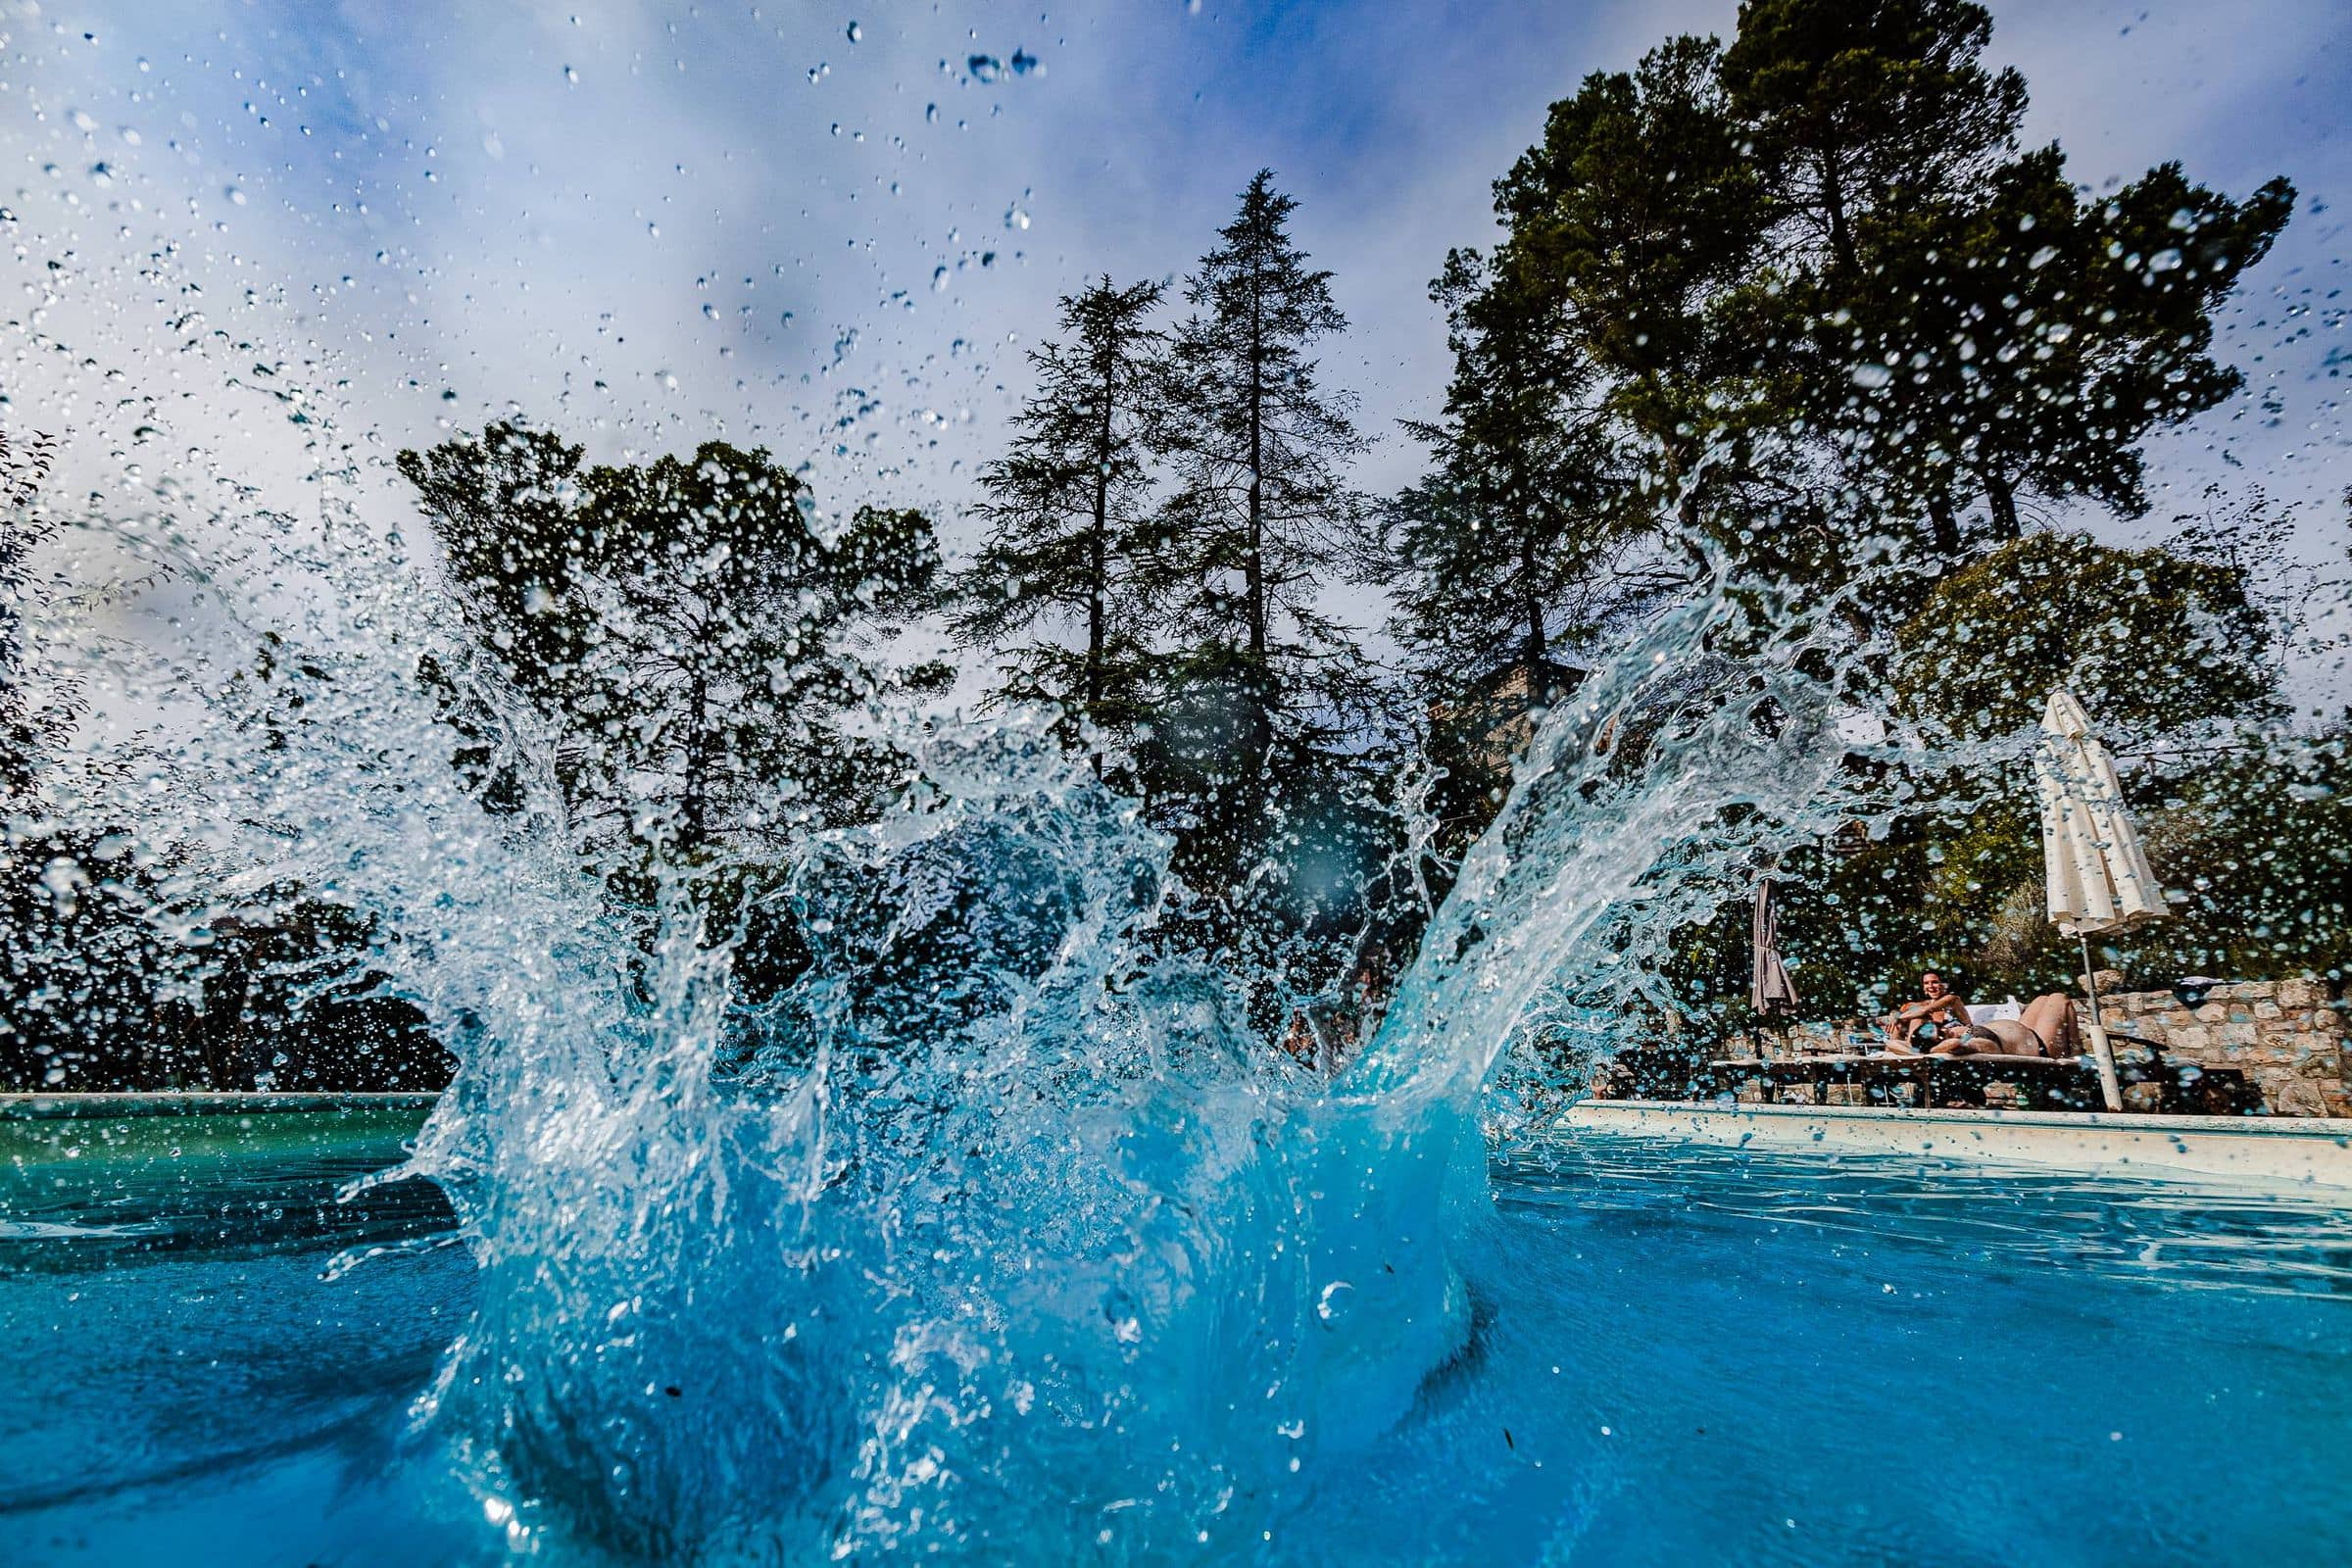 Guest doing a massive cannon ball at a pool party during a Villa Tre Grazie wedding celebration near Todi, Italy.